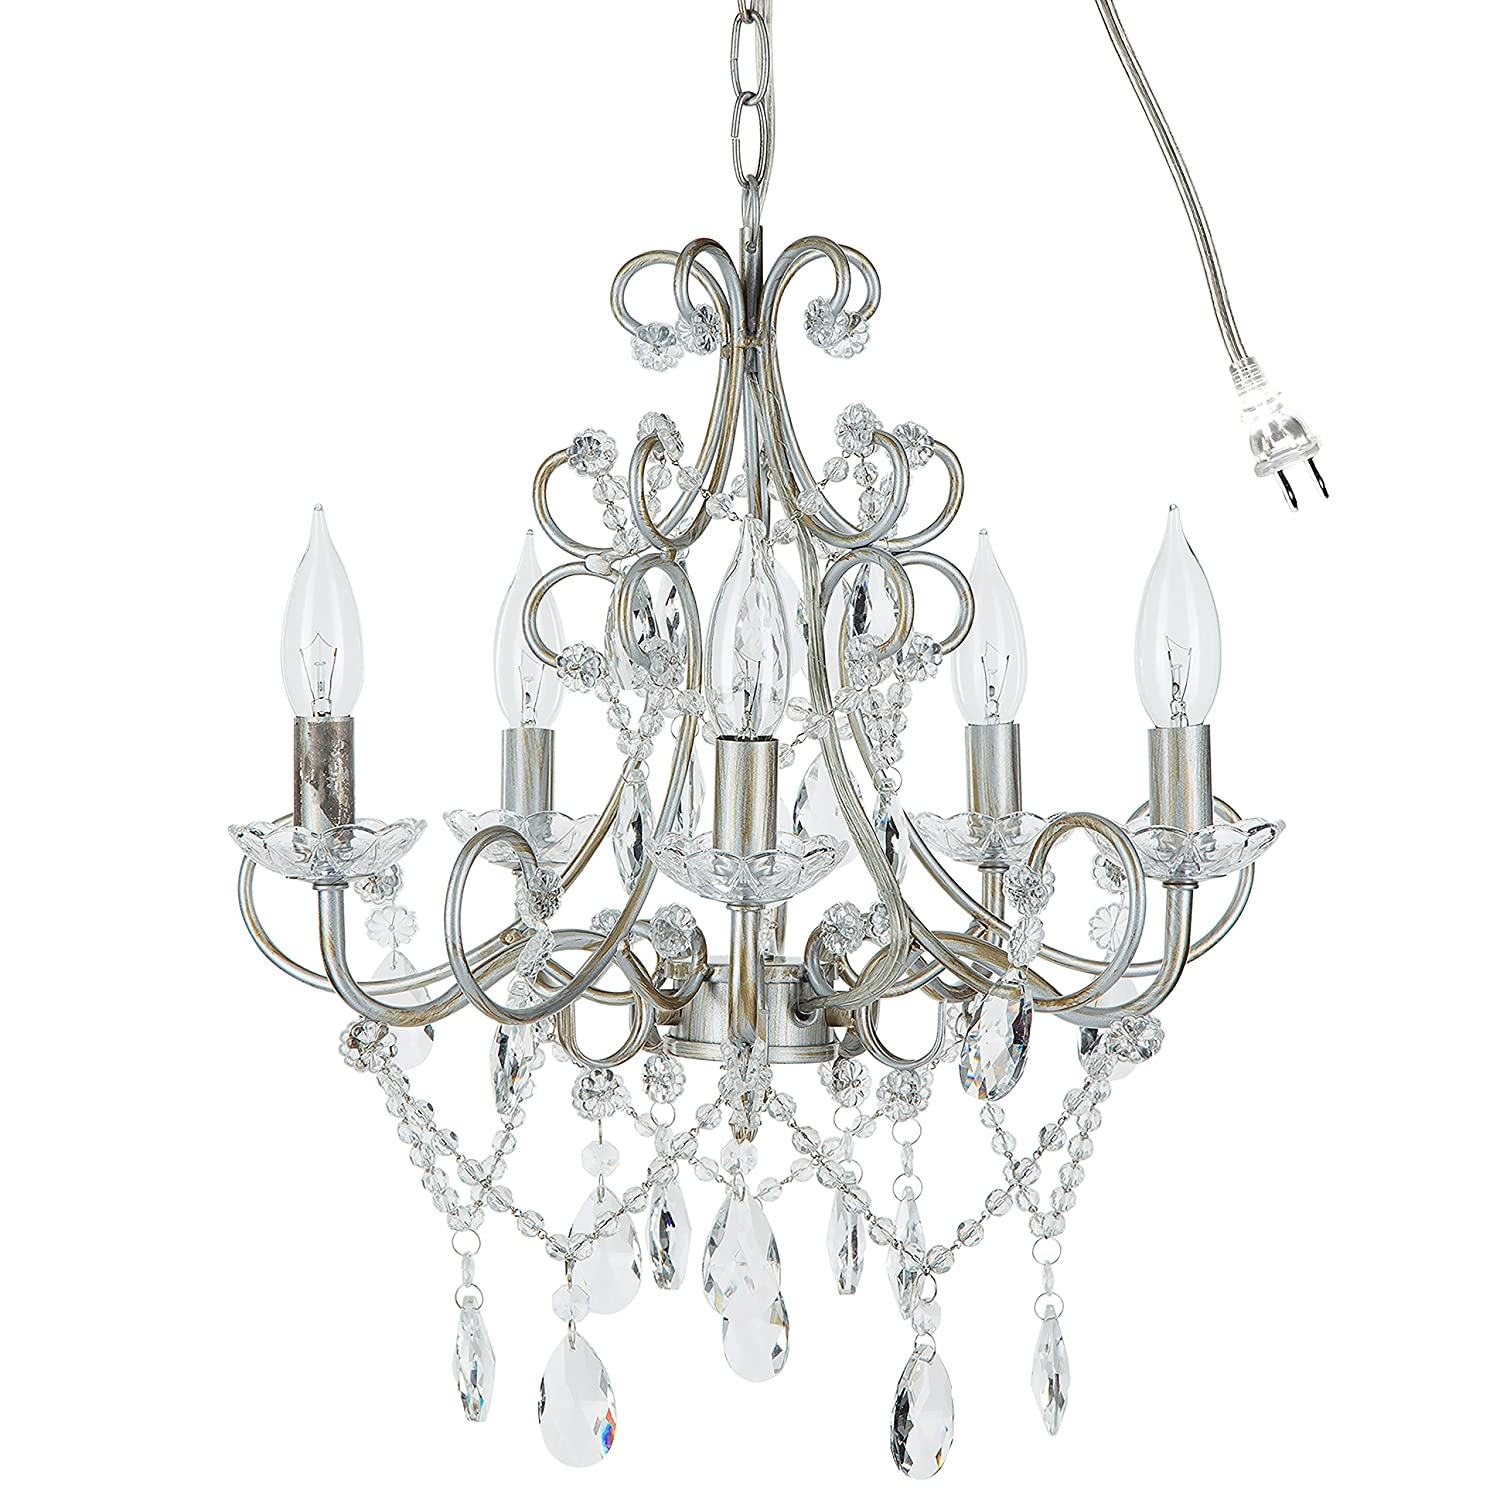 Theresa Vintage Silver Crystal Chandelier, 5 Light Swag Plug-In Glass Pendant Wrought Iron Ceiling Lighting Fixture Lamp